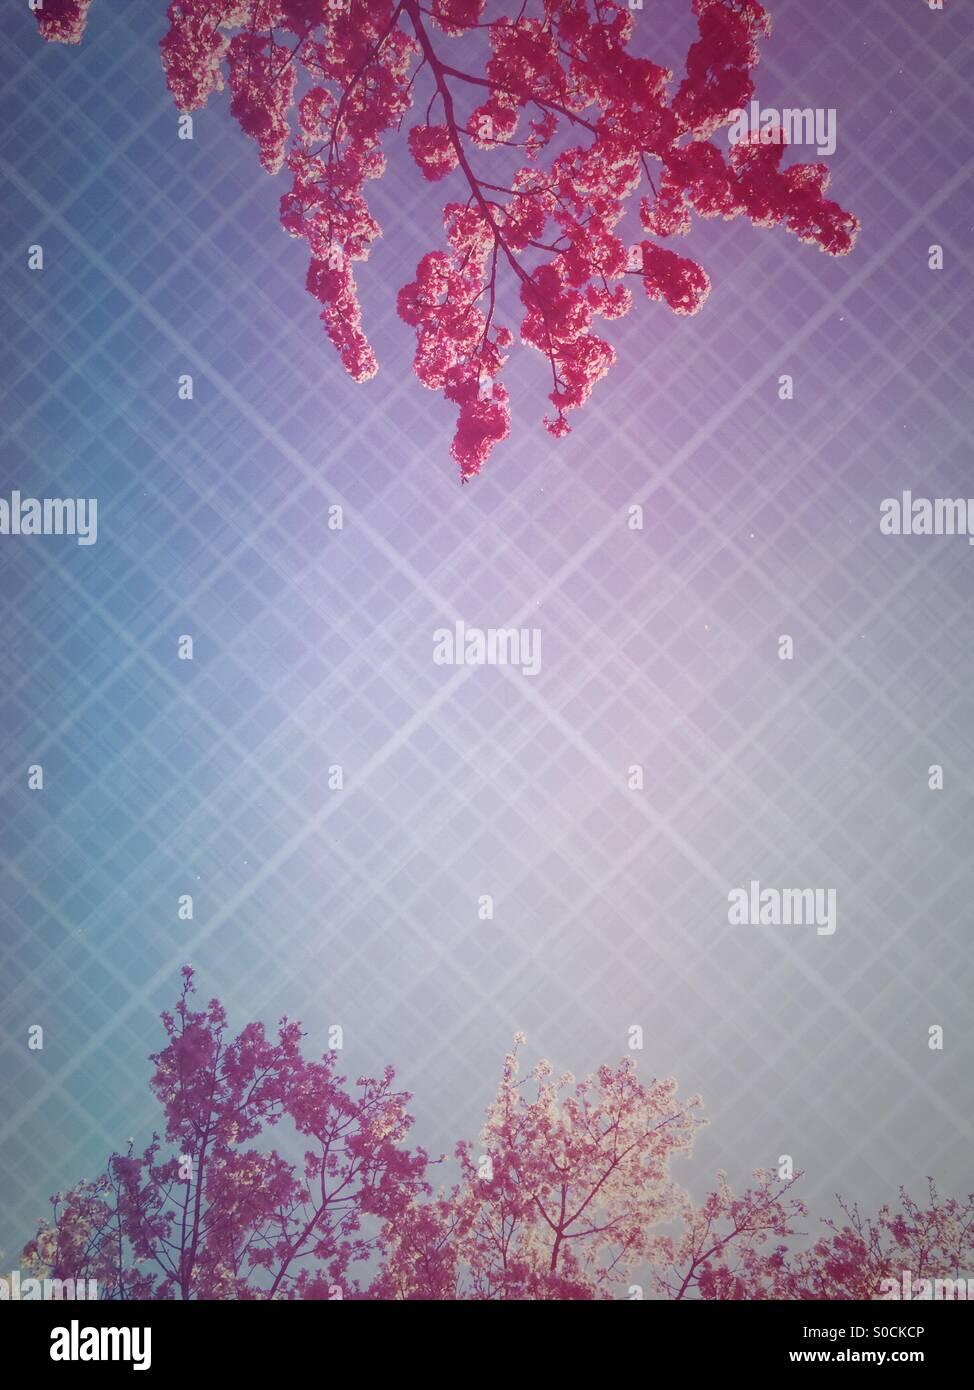 Two varieties of backlit sakura or cherry blossom in a deep pink and light pink color. Diamond knit pattern overlay. - Stock Image